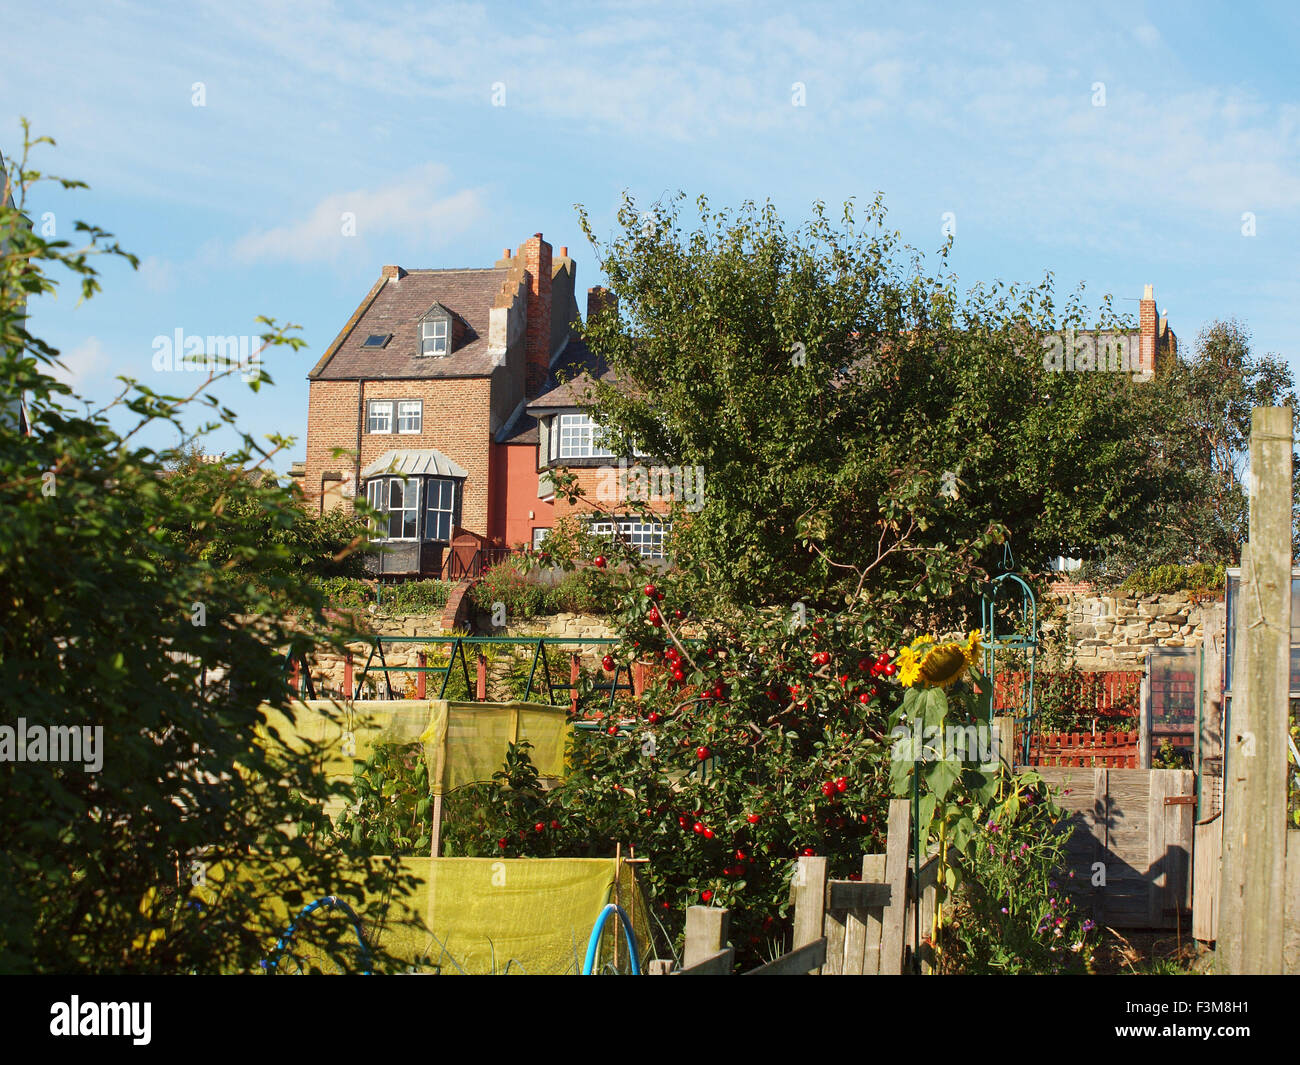 Newcastle Upon Tyne, UK. 9th October 2015. UK Weather: Automnal landscape of dwellings and gardens bathe in the - Stock Image